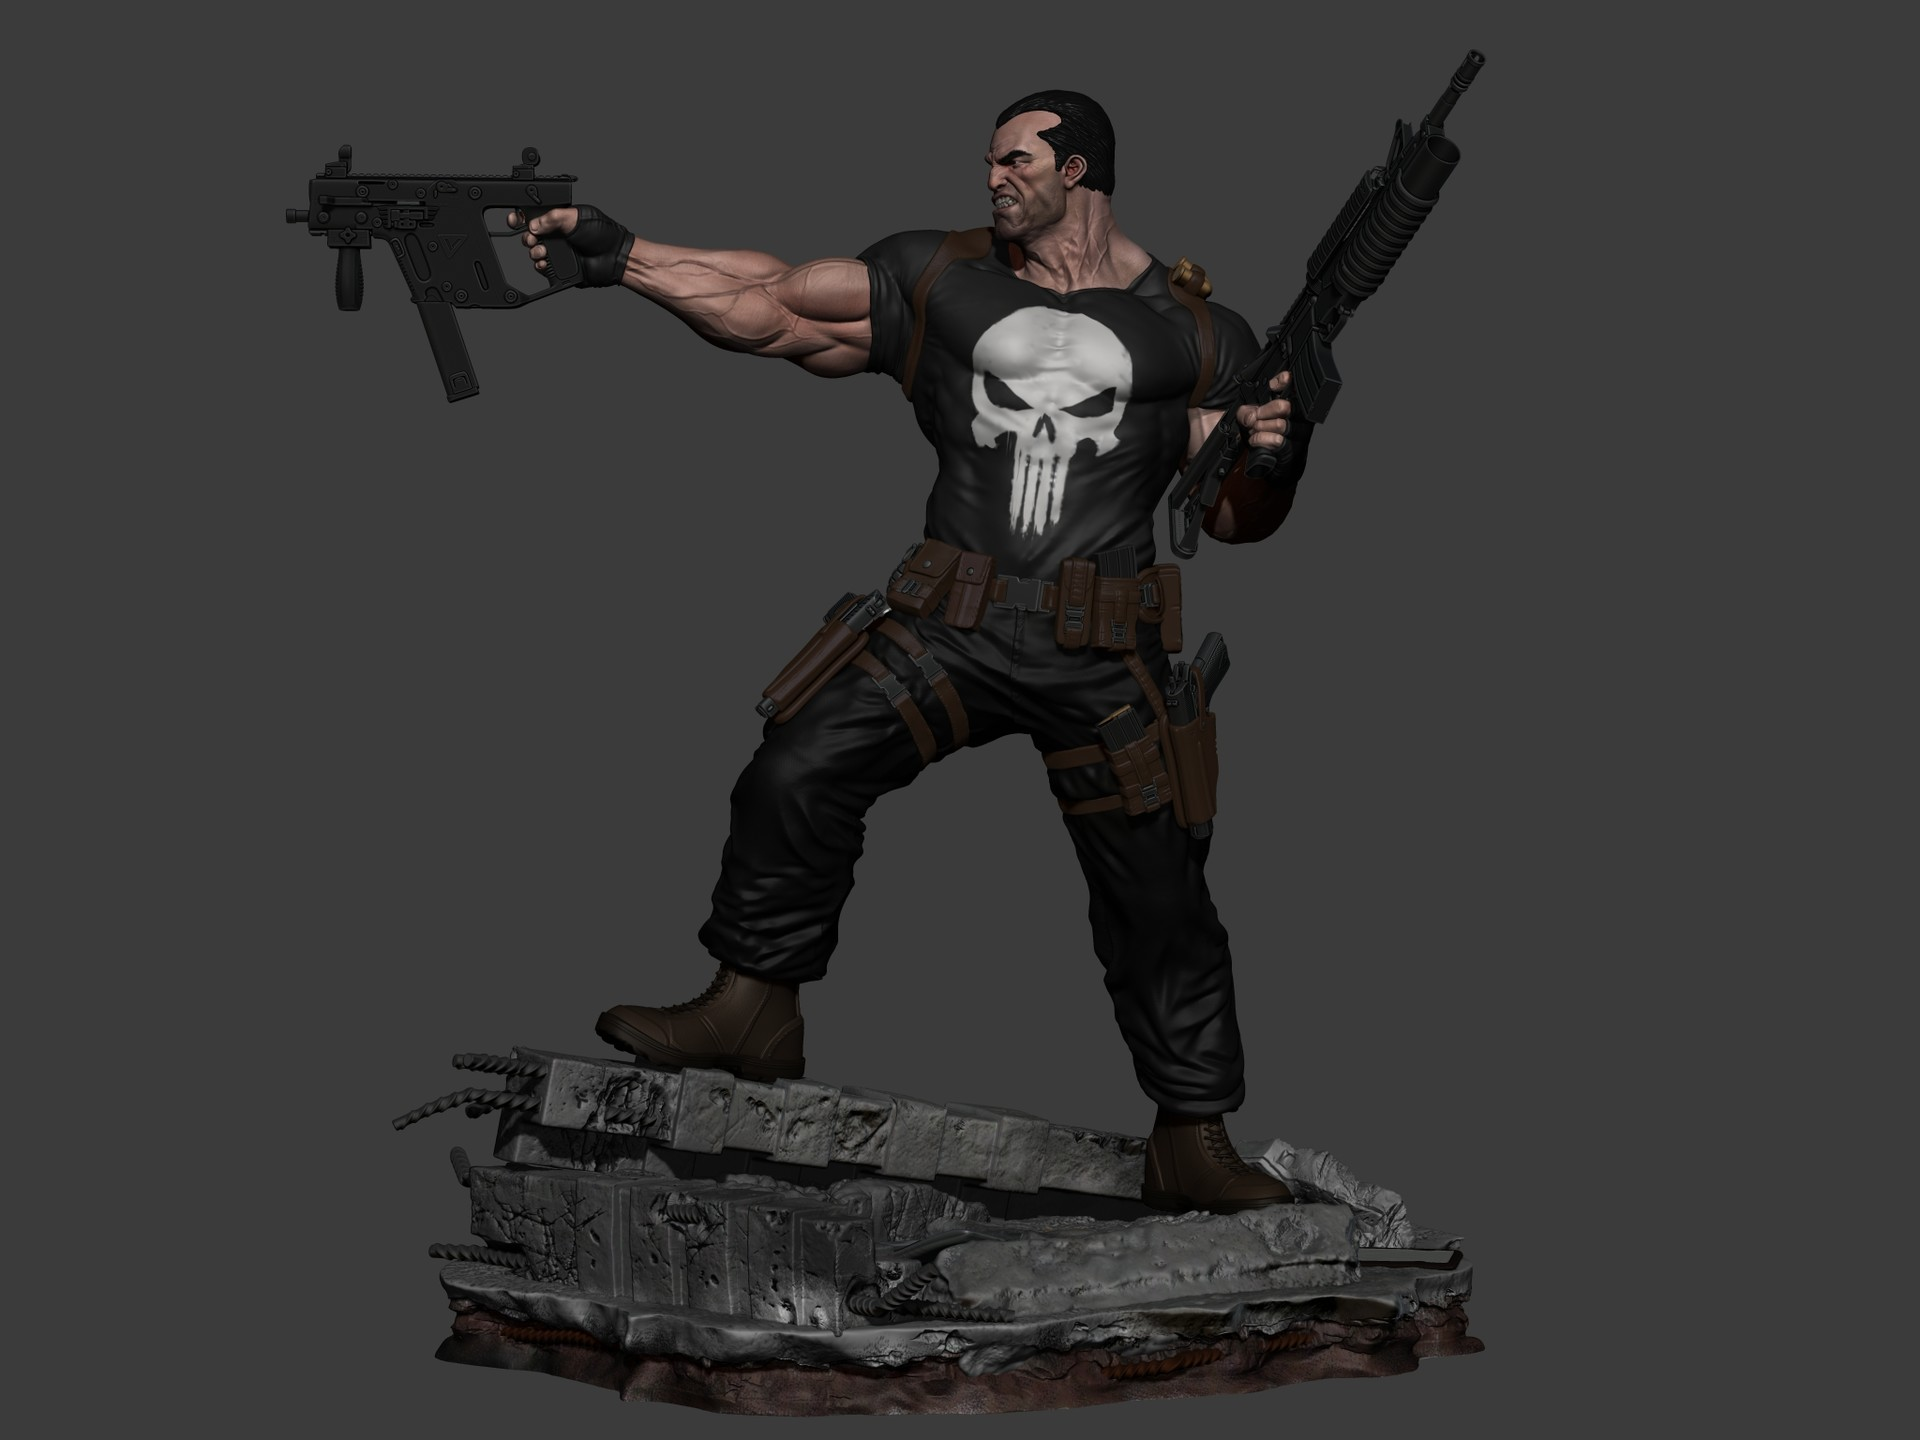 Franco carlesimo punisher prev 001